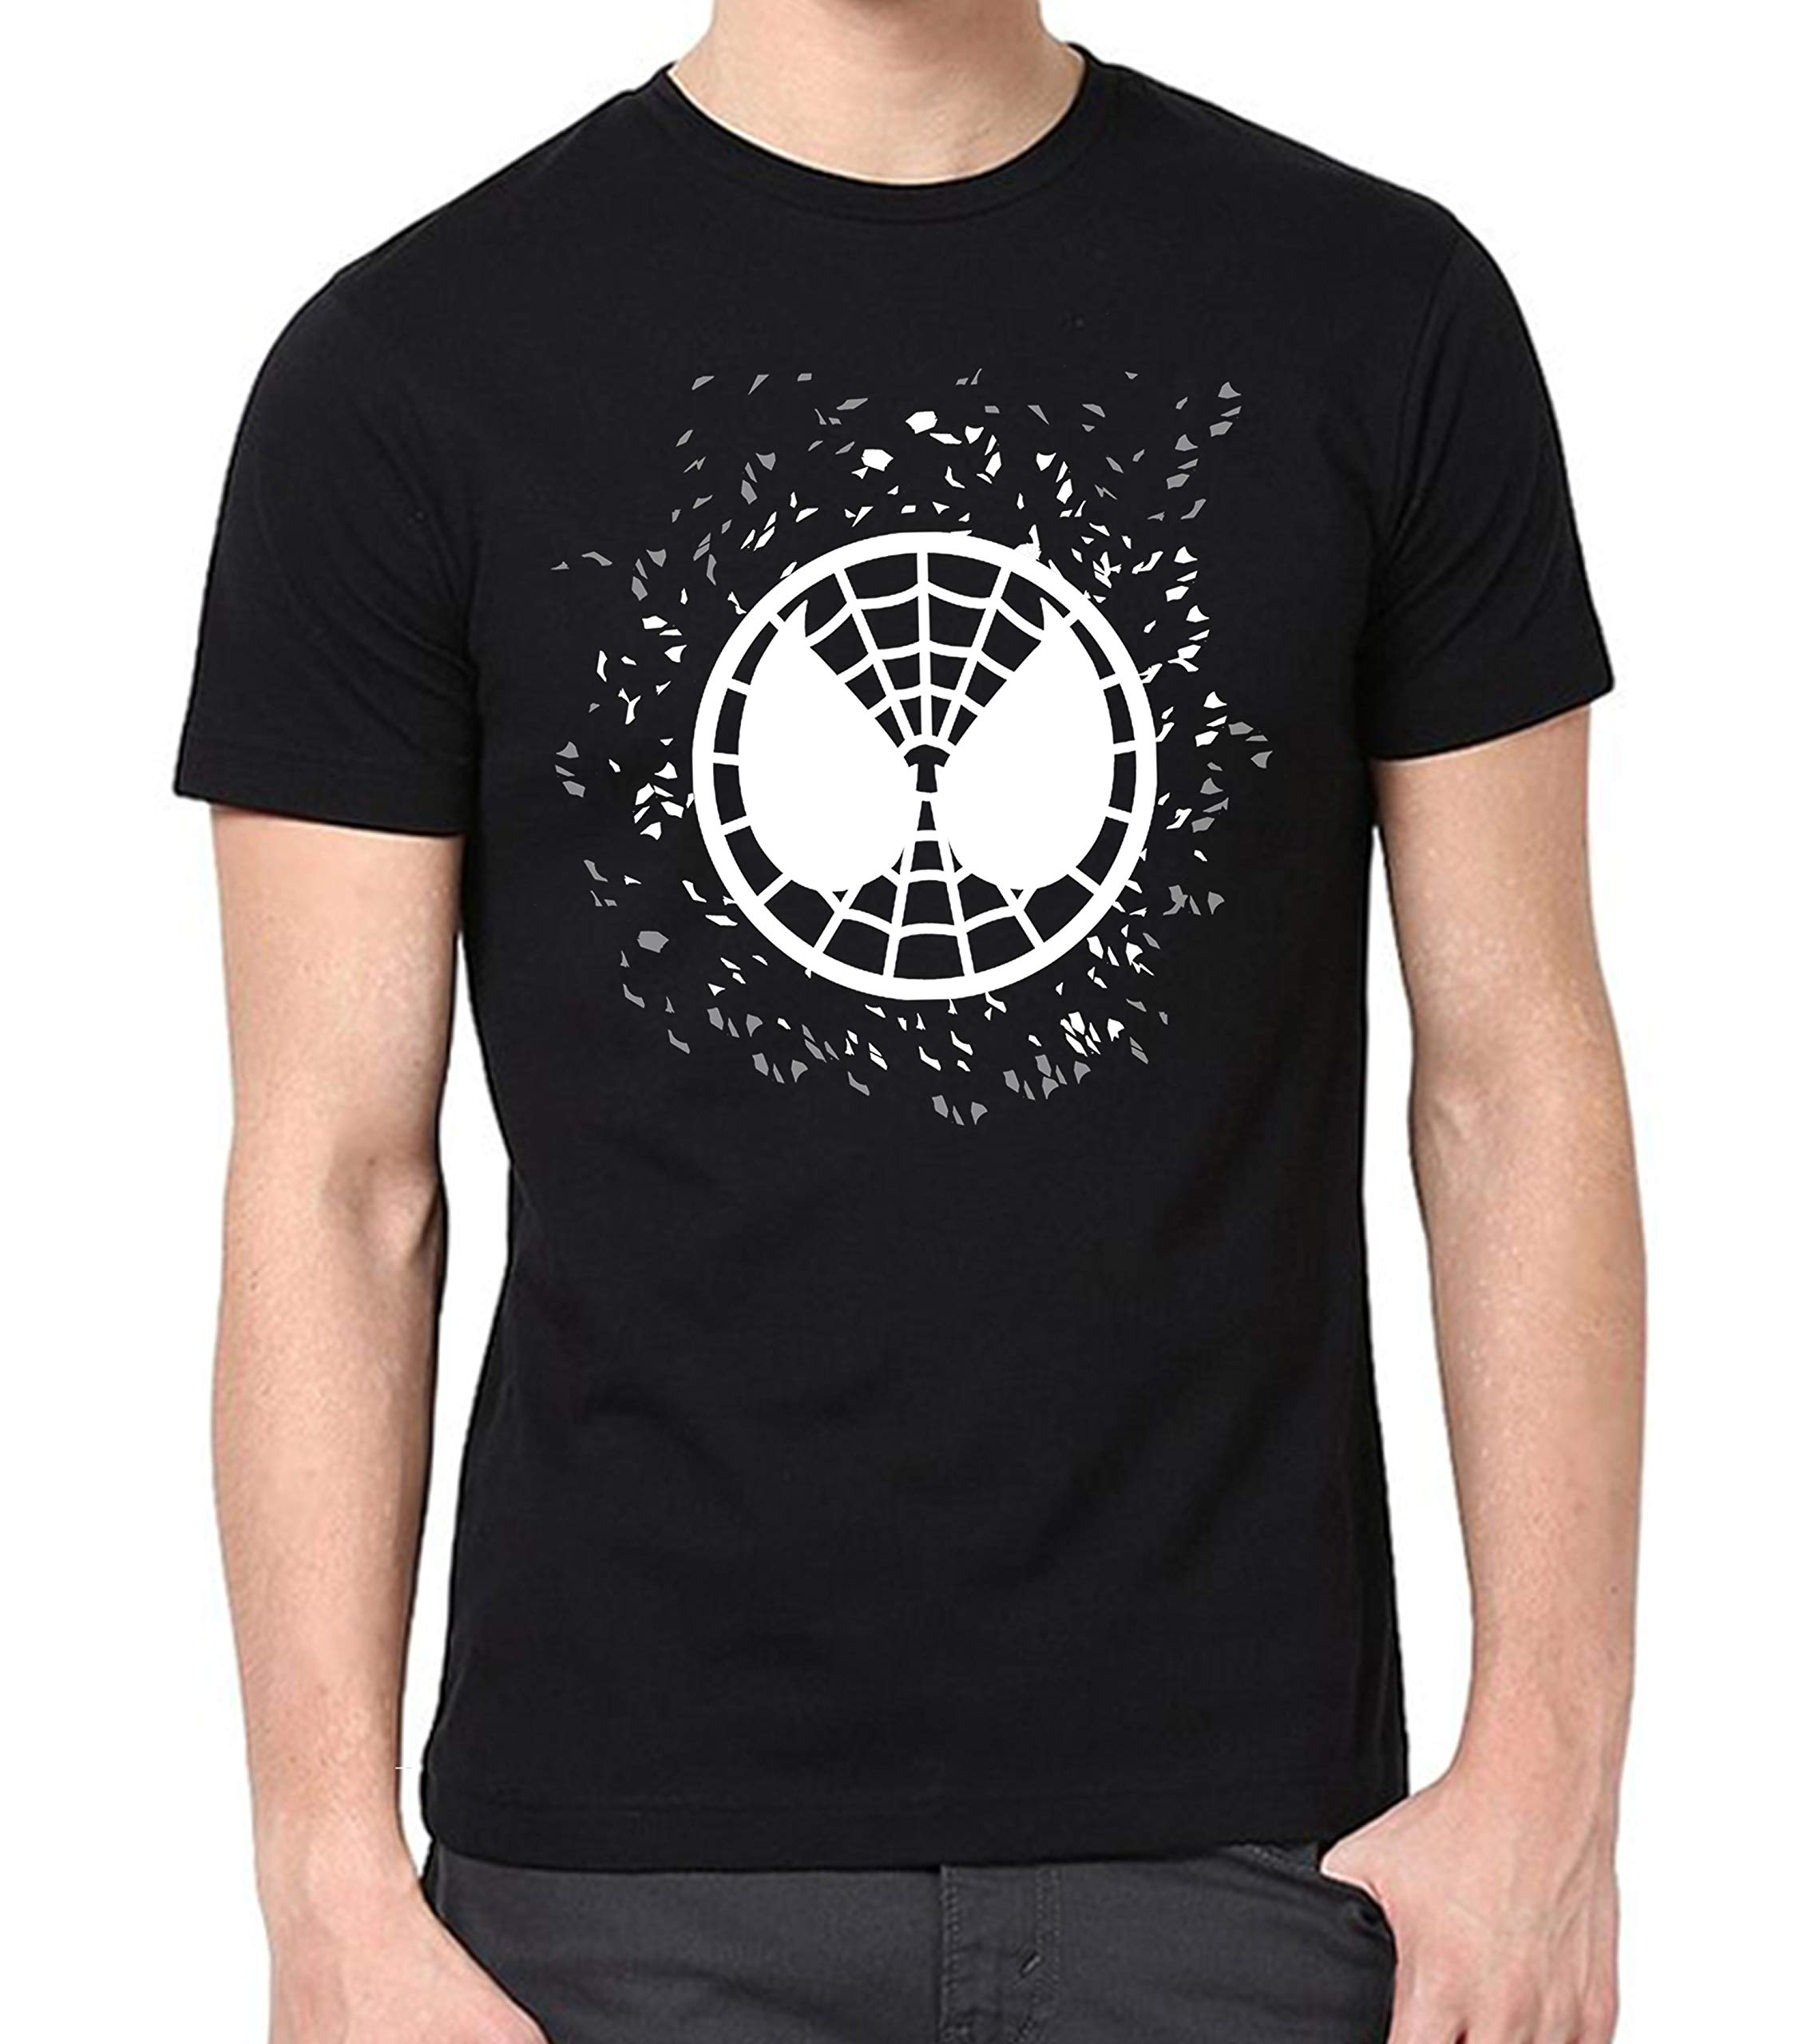 Spiderman Funny Mens Graphic T Shirts Buy Online In India At Desertcart